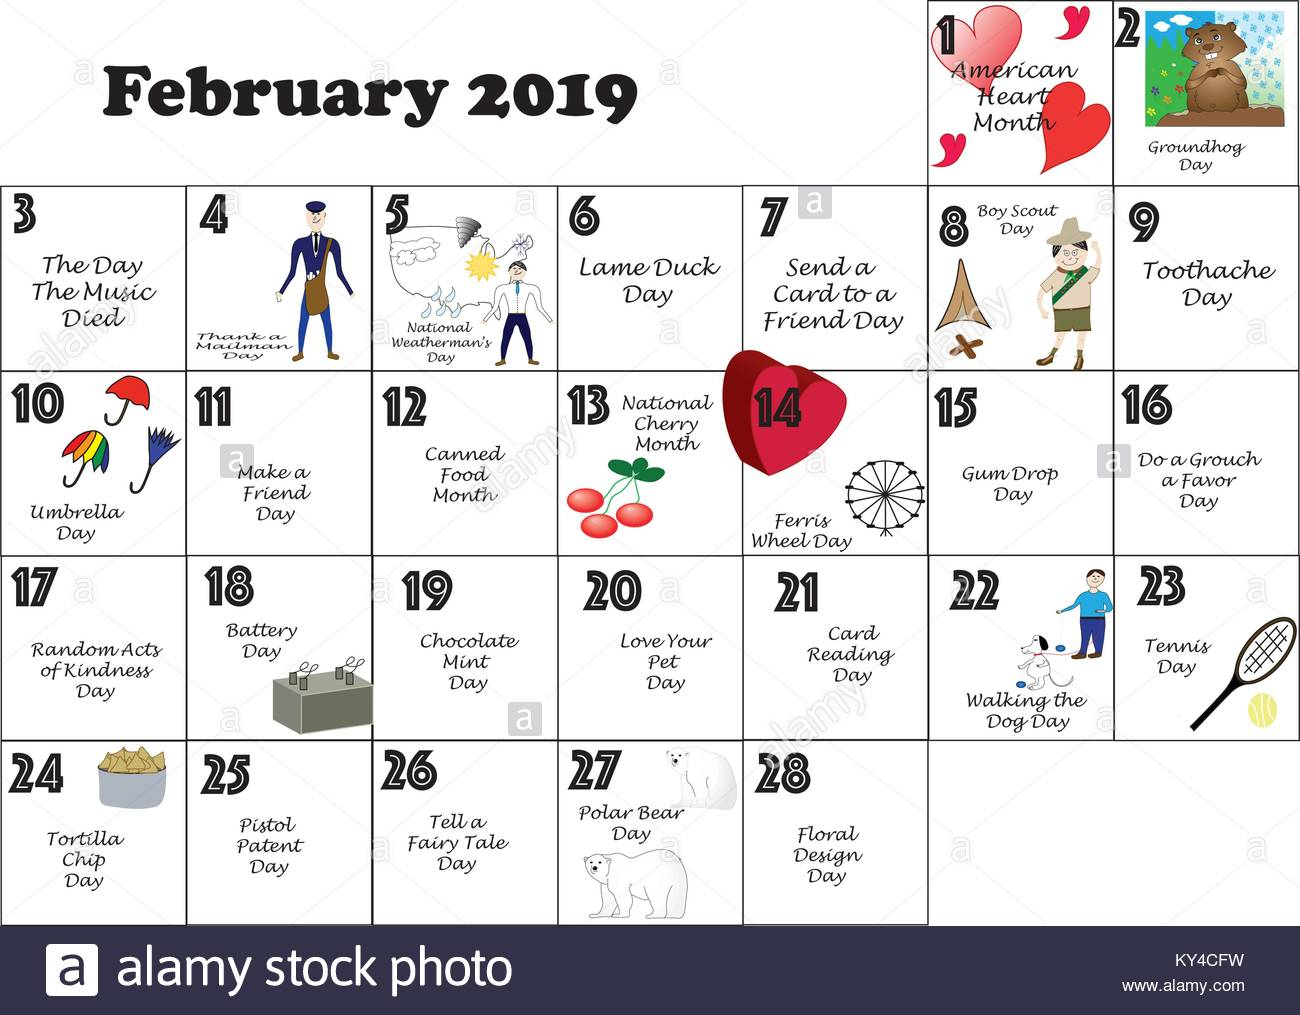 February 2019 Calendar With Events February 2019 calendar illustrated and annotated with daily Quirky